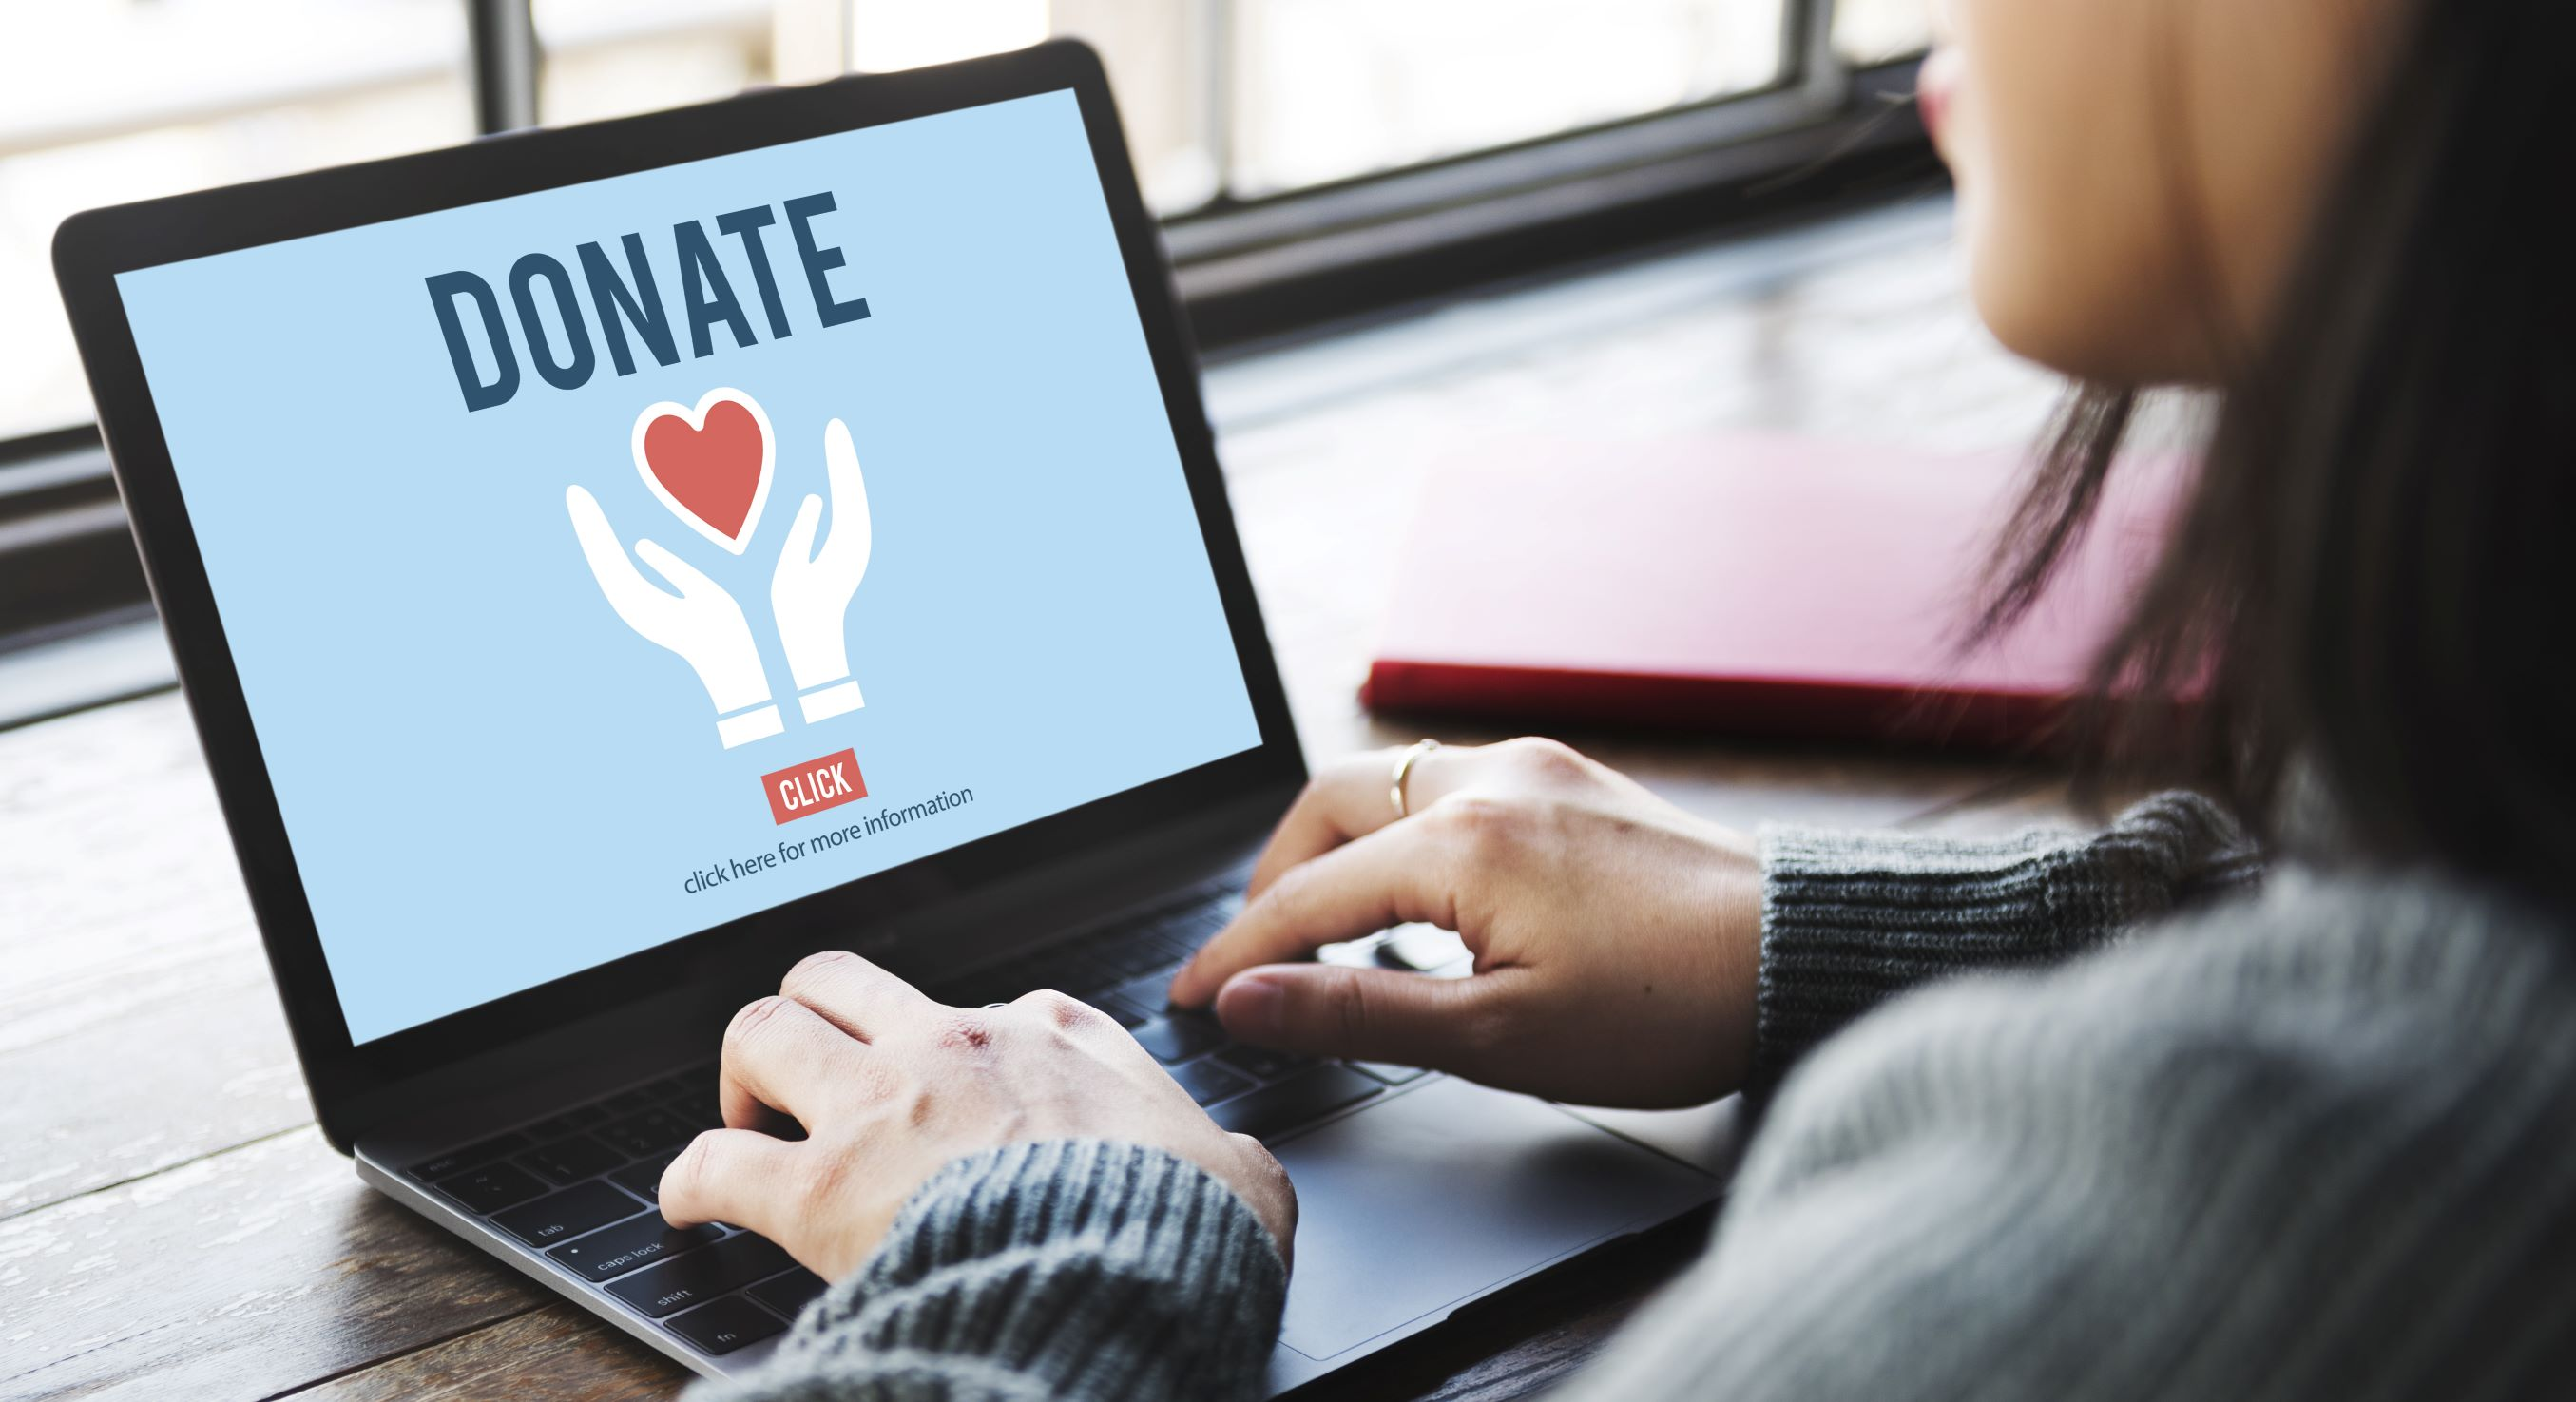 12 Ideas for Virtual Fundraiser and Online Events - Get Fully Funded